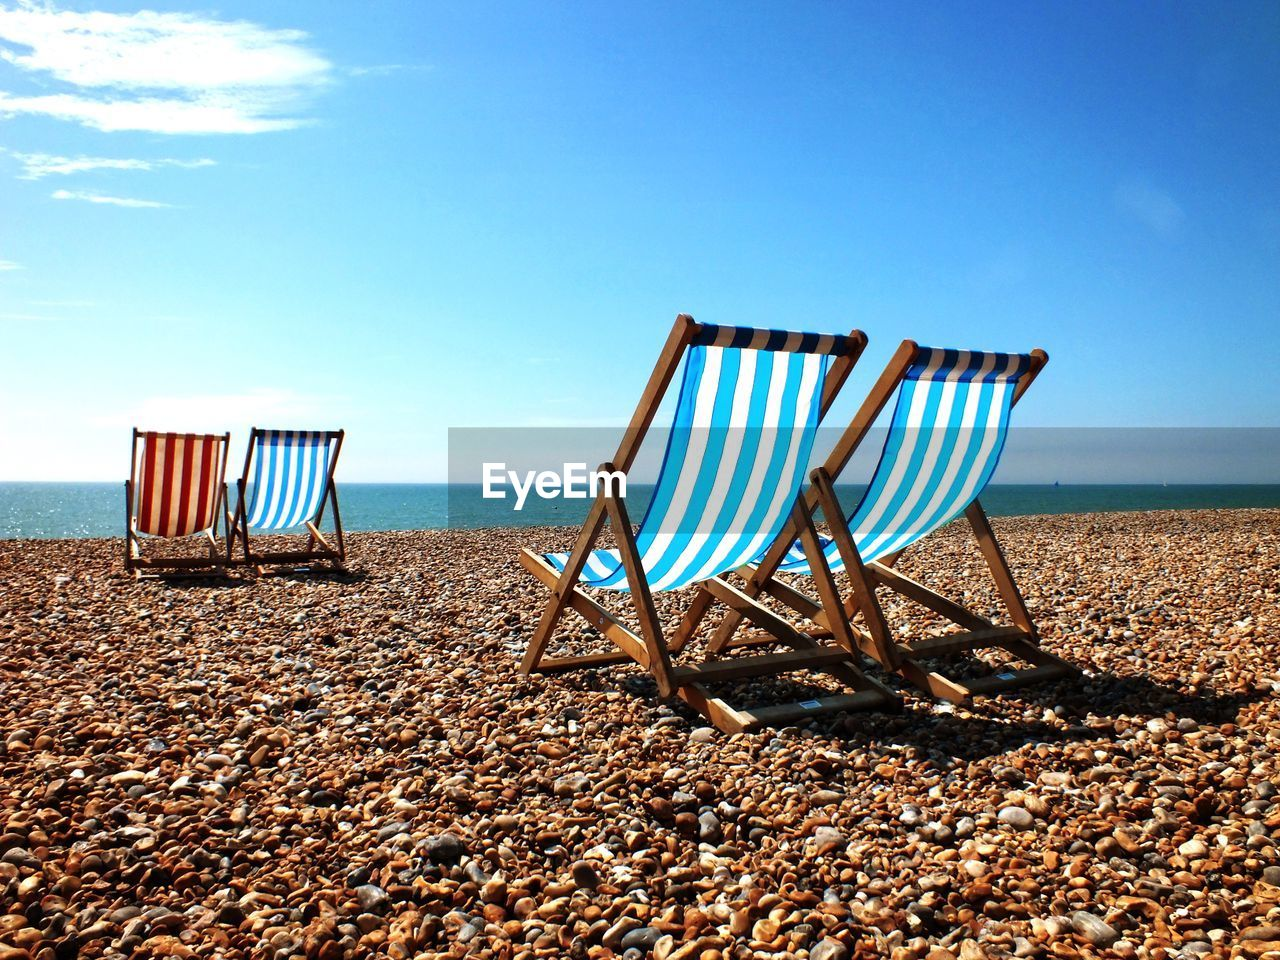 View of deck chairs on coast